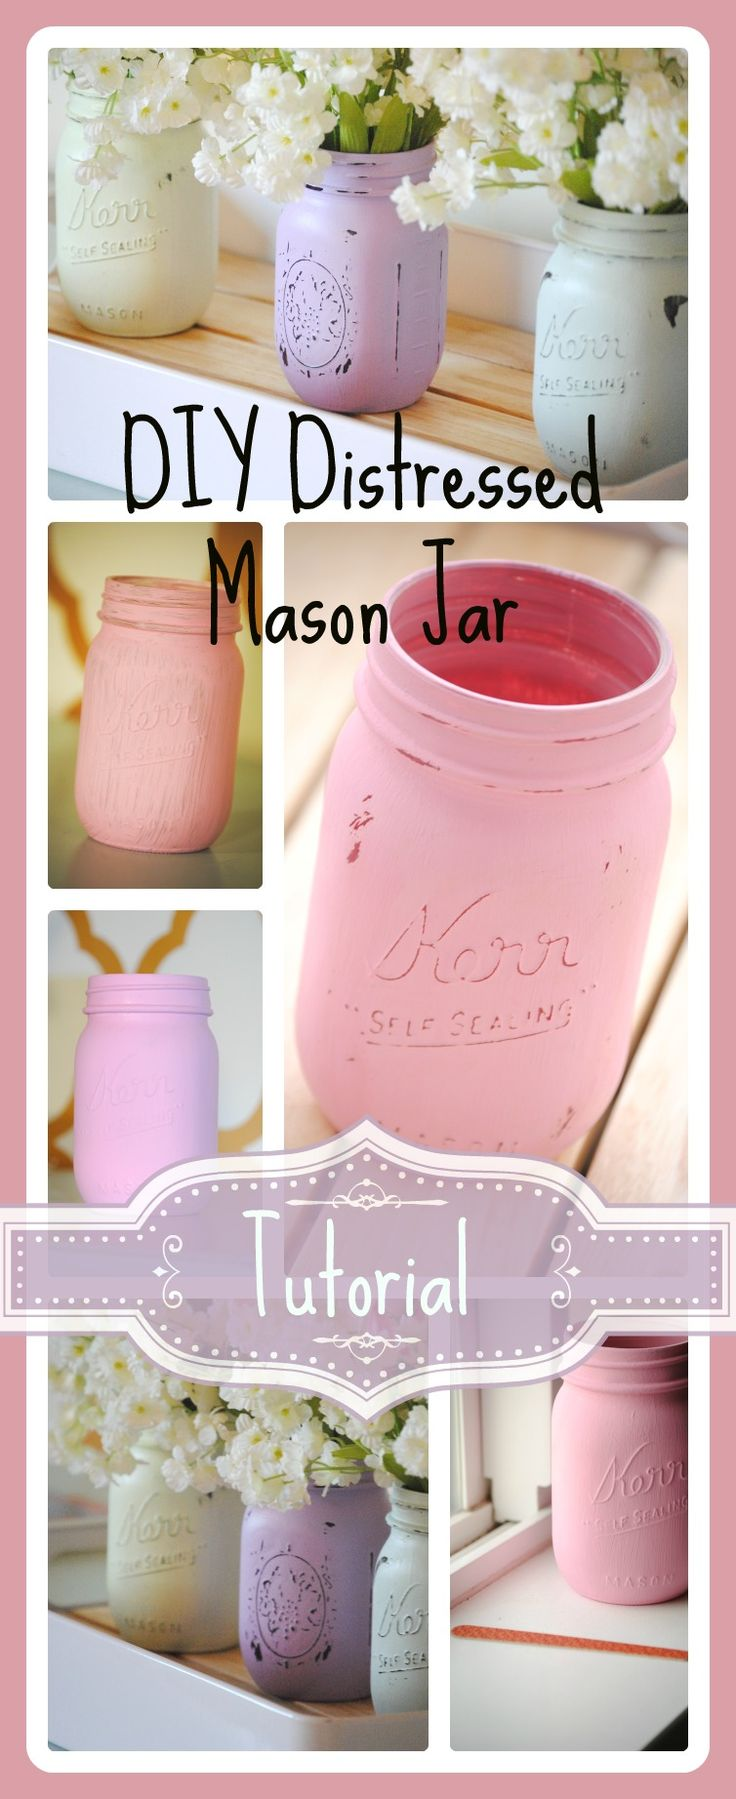 Distressed Mason Jar Tutorial.  Step by step instructions for painting and distressing mason jars.   #masonjars #redomom.com #diy